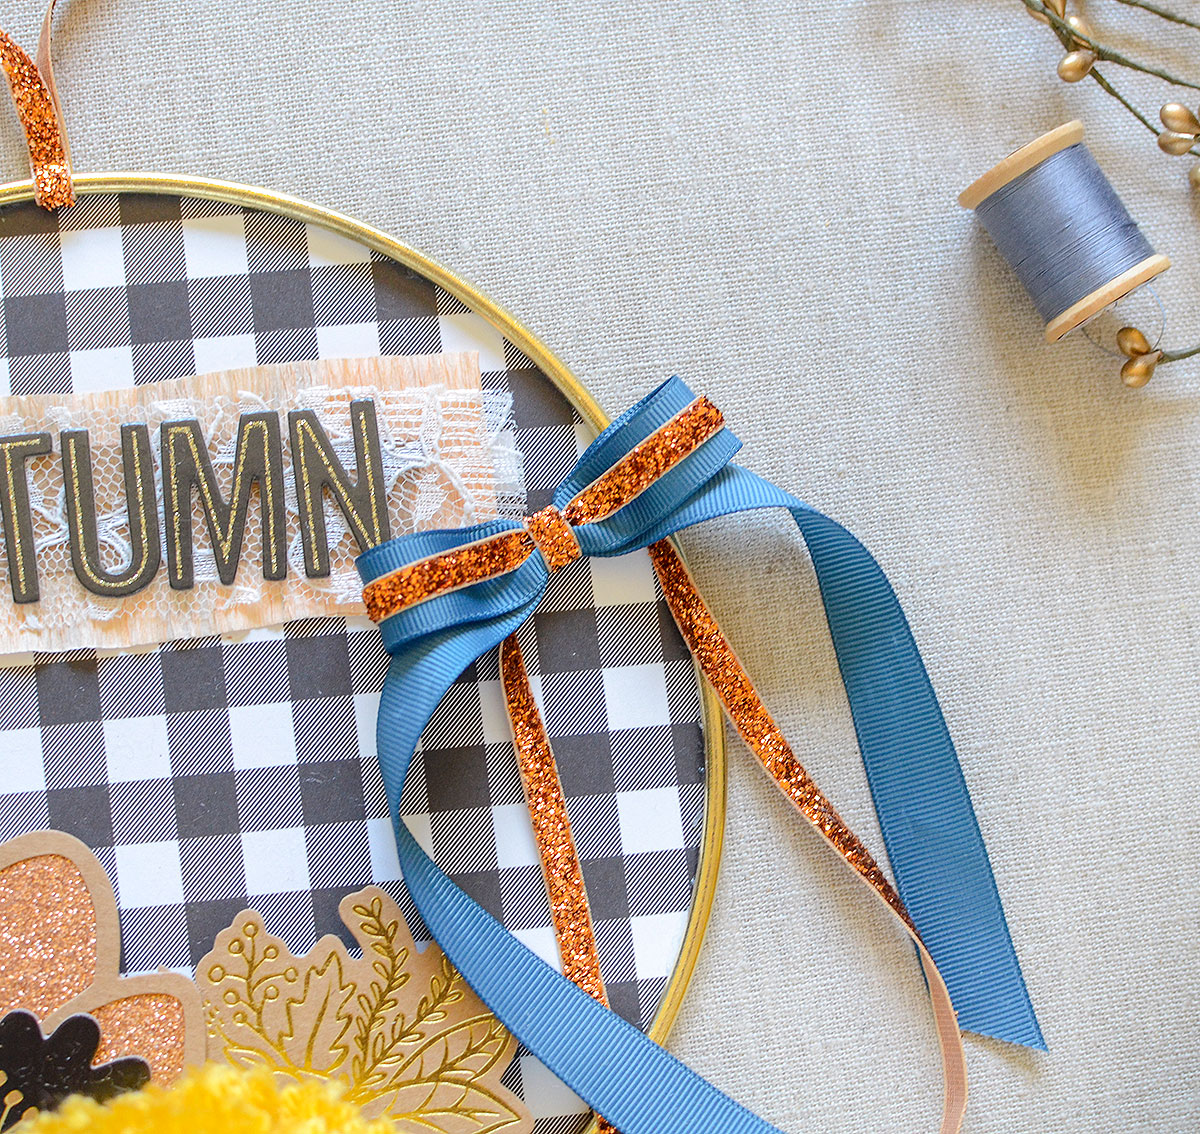 Autumn Hoop by Rebecca Luminaria for We R Memory Keepers featuring the Bow Loom